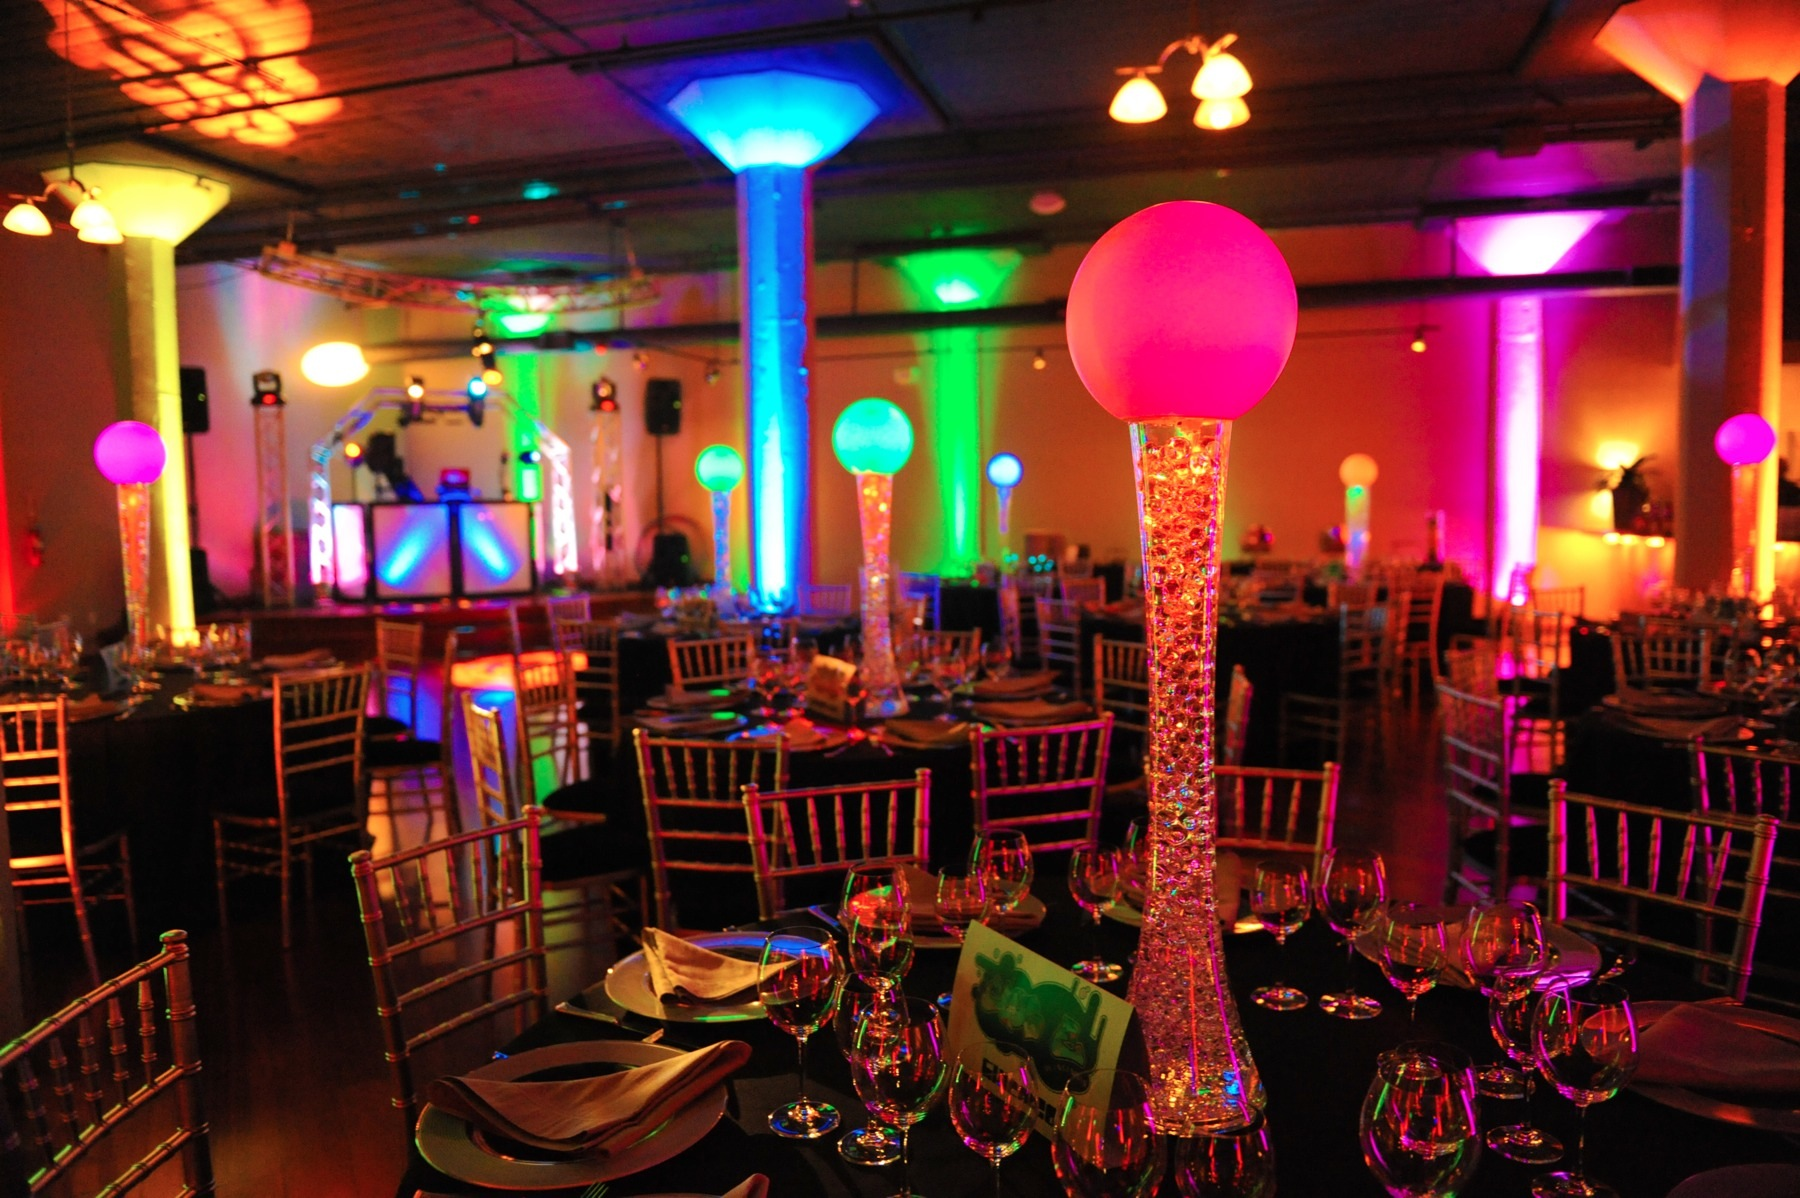 San Rafael Bar Creative Mitzvah Party Image / Photo